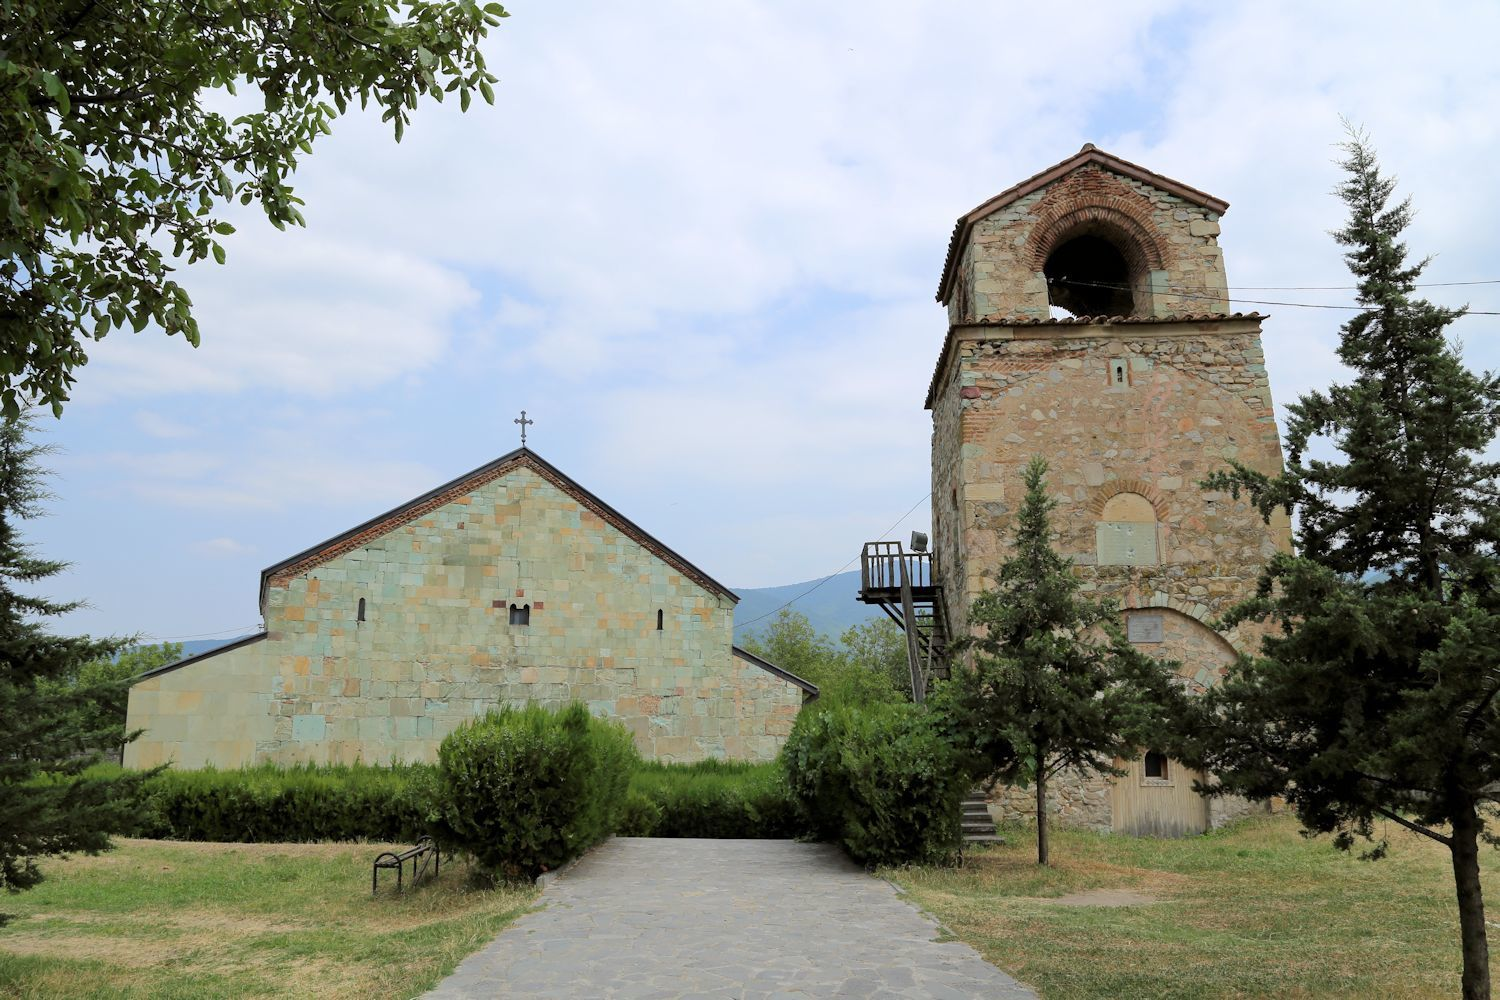 Bolnisi Sioni Cathedrl and the bell-tower